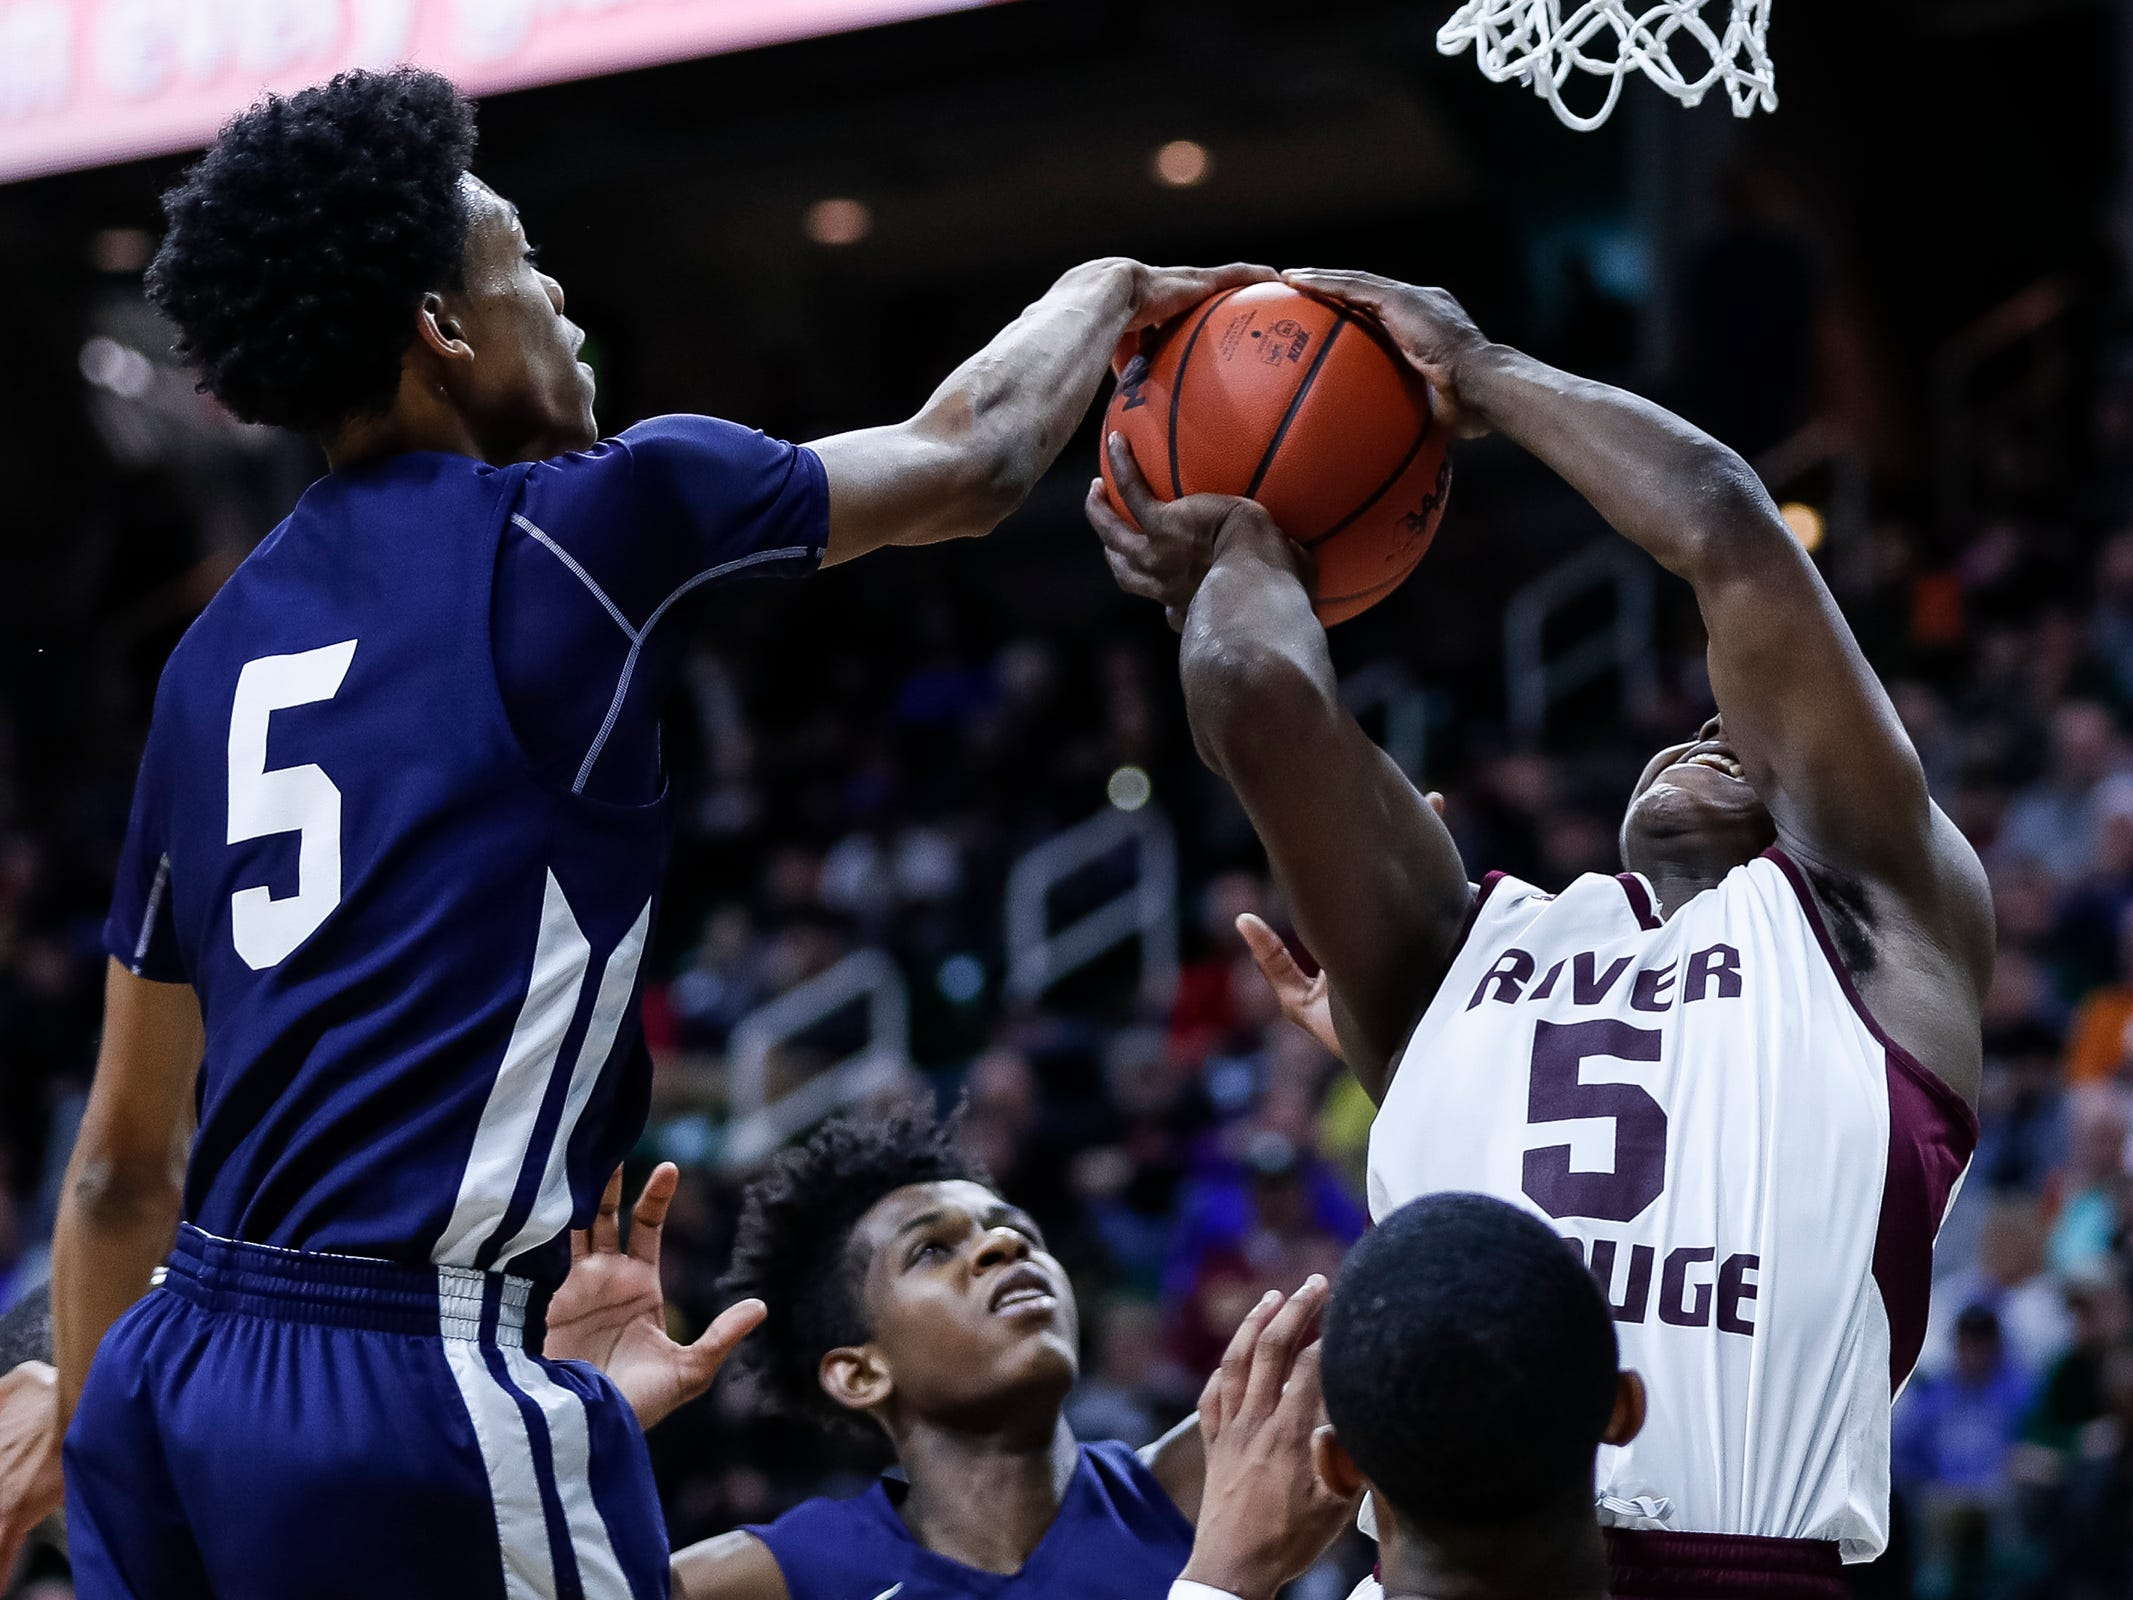 Harper Woods Chandler Park's Tyland Tate (5) block a layup from River Rouge's Jason Norton (5) during the first half of MHSAA Division 2 semifinal at the Breslin Center in East Lansing, Friday, March 15, 2019.